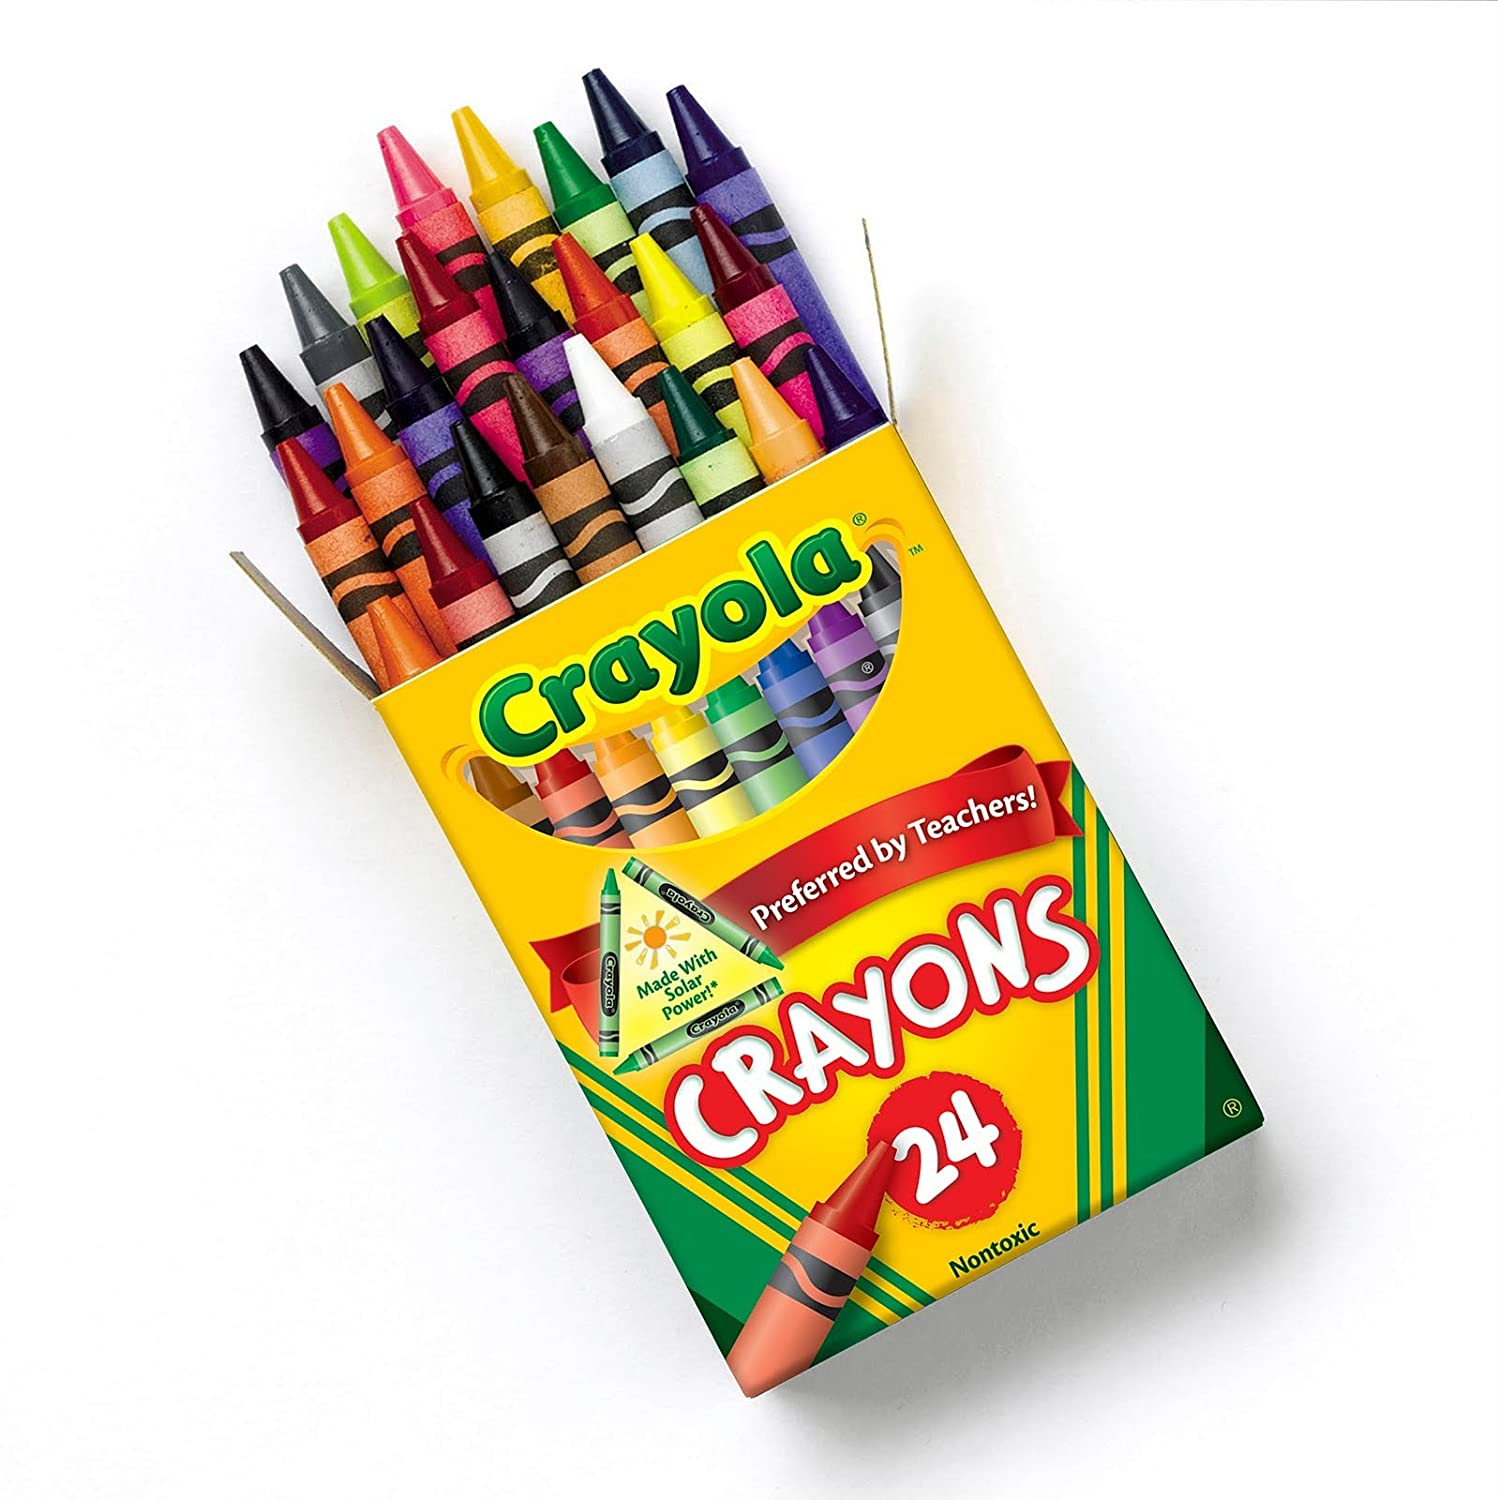 Amazon.com: Crayola Classic Color Pack Crayons: Office Products